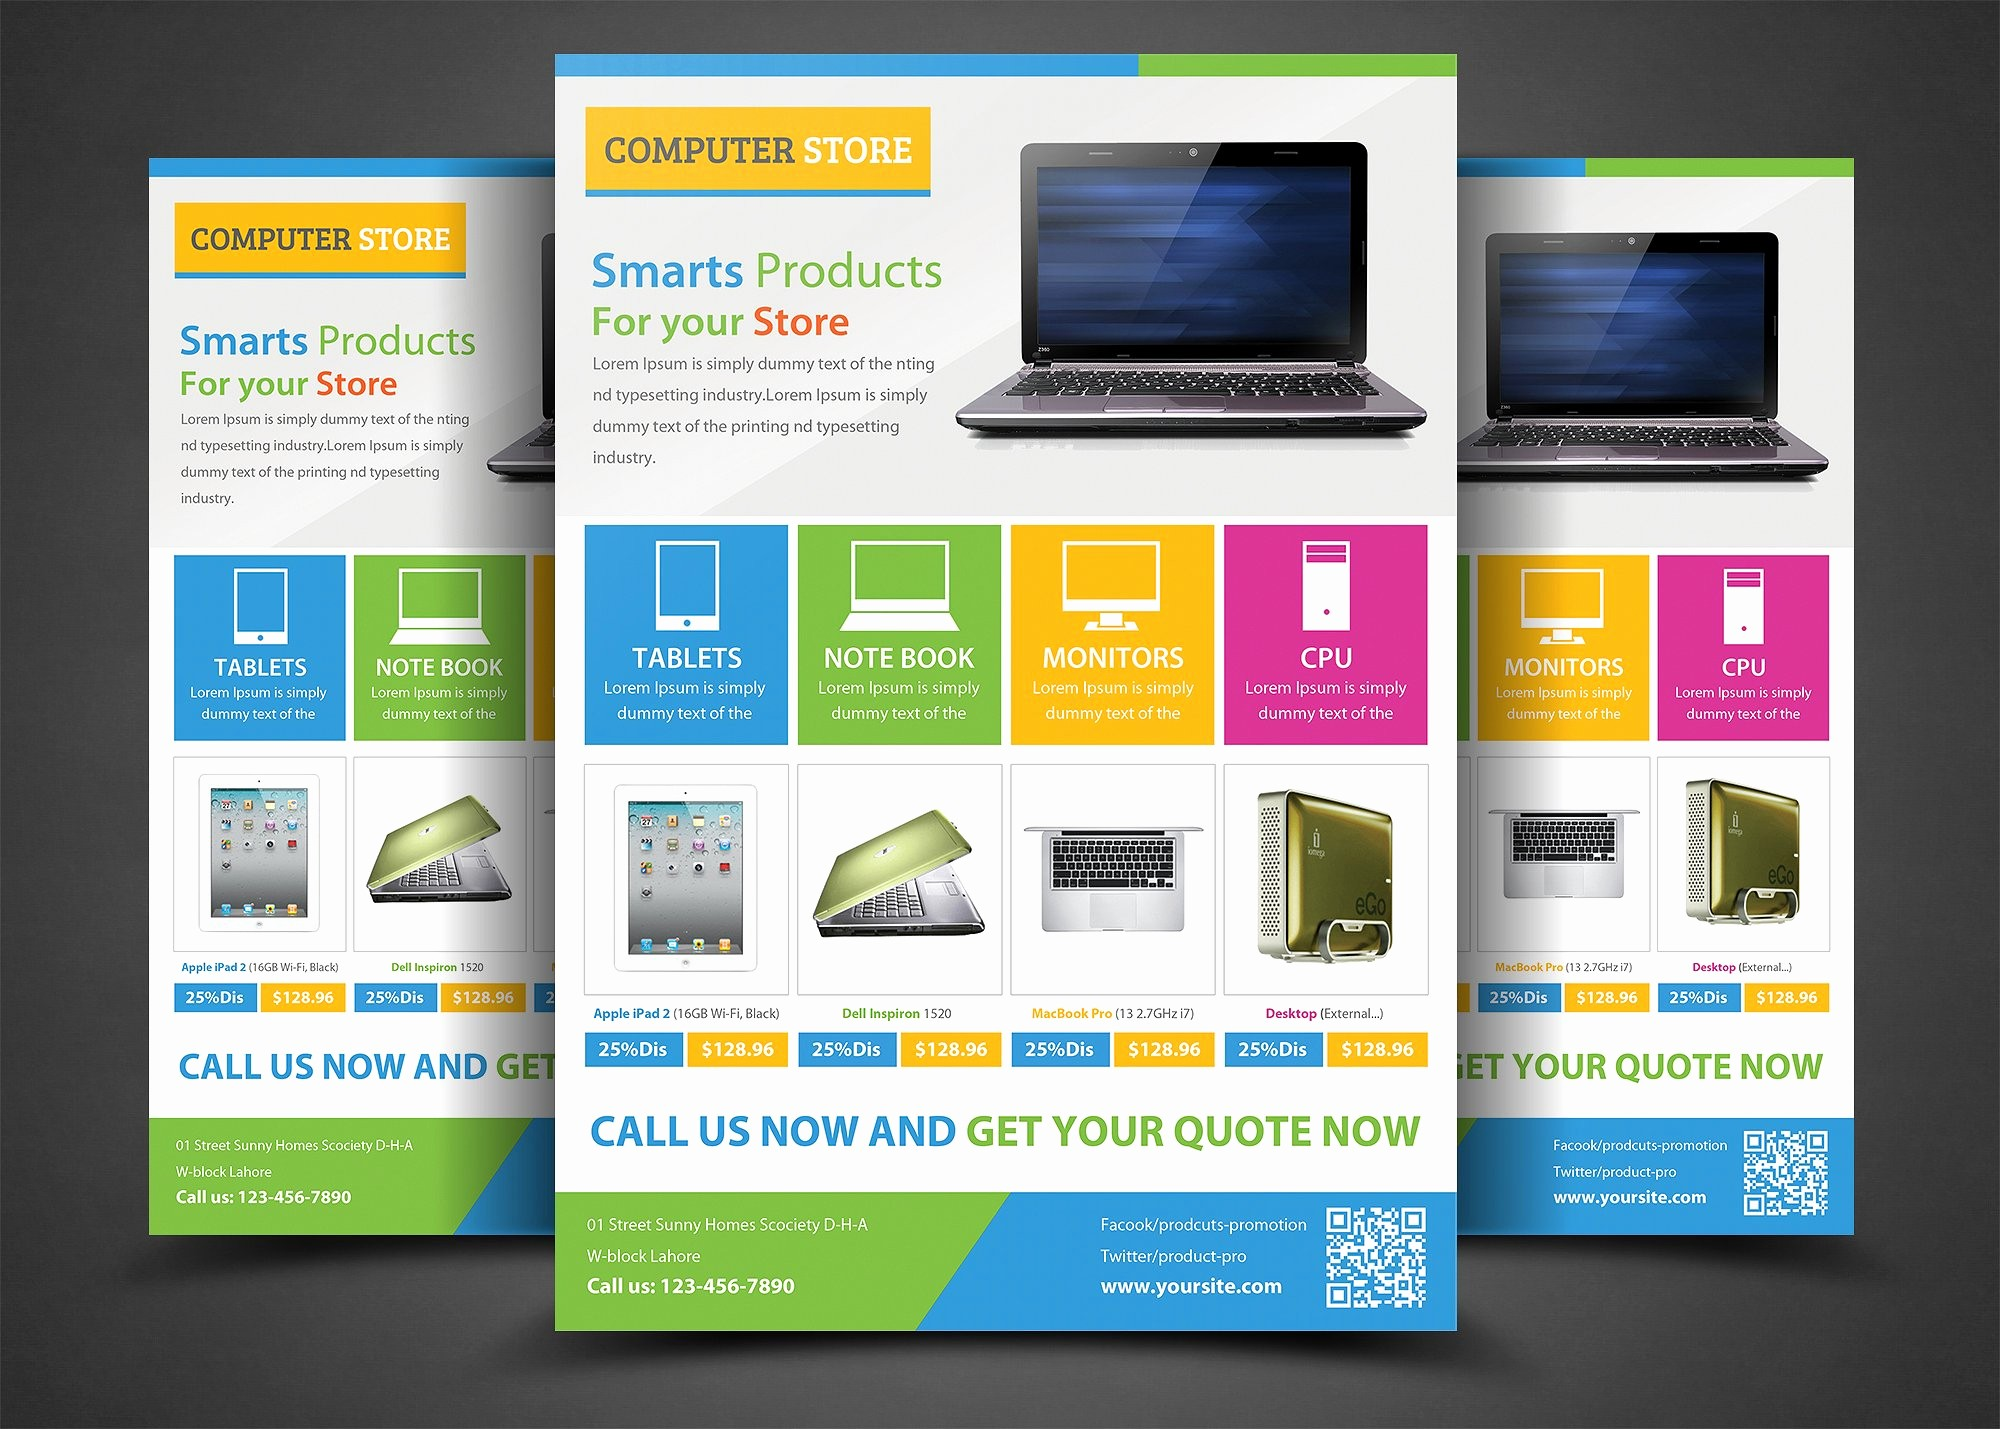 For Rent Flyer Template Free Inspirational for Rent Flyer Template Portablegasgrillweber